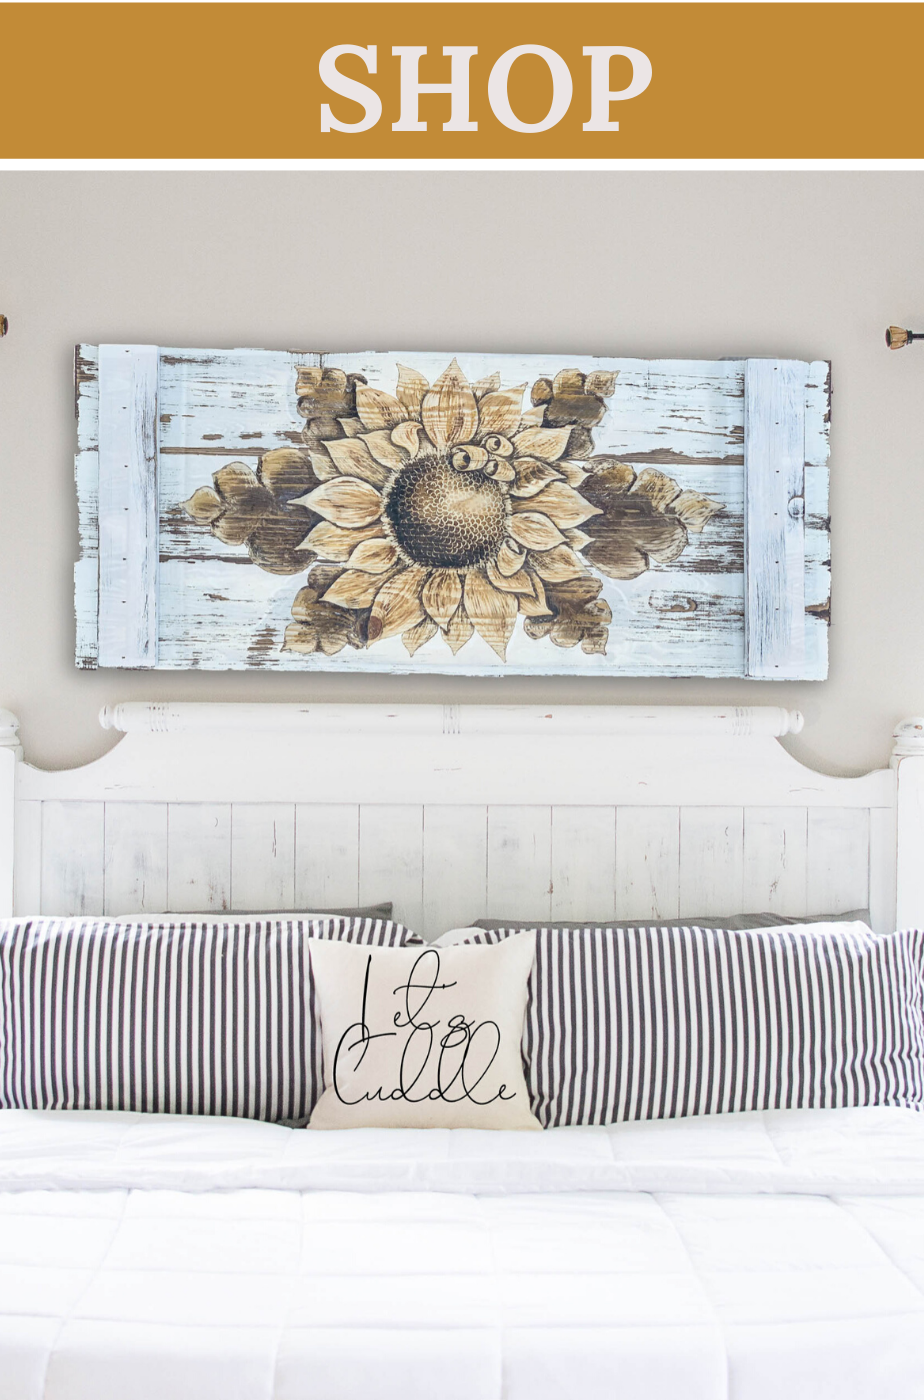 Sunflower Wall Hanging In Distressed White In 2020 With Images Rustic Wall Art Country Decor Rustic Wood Wall Art